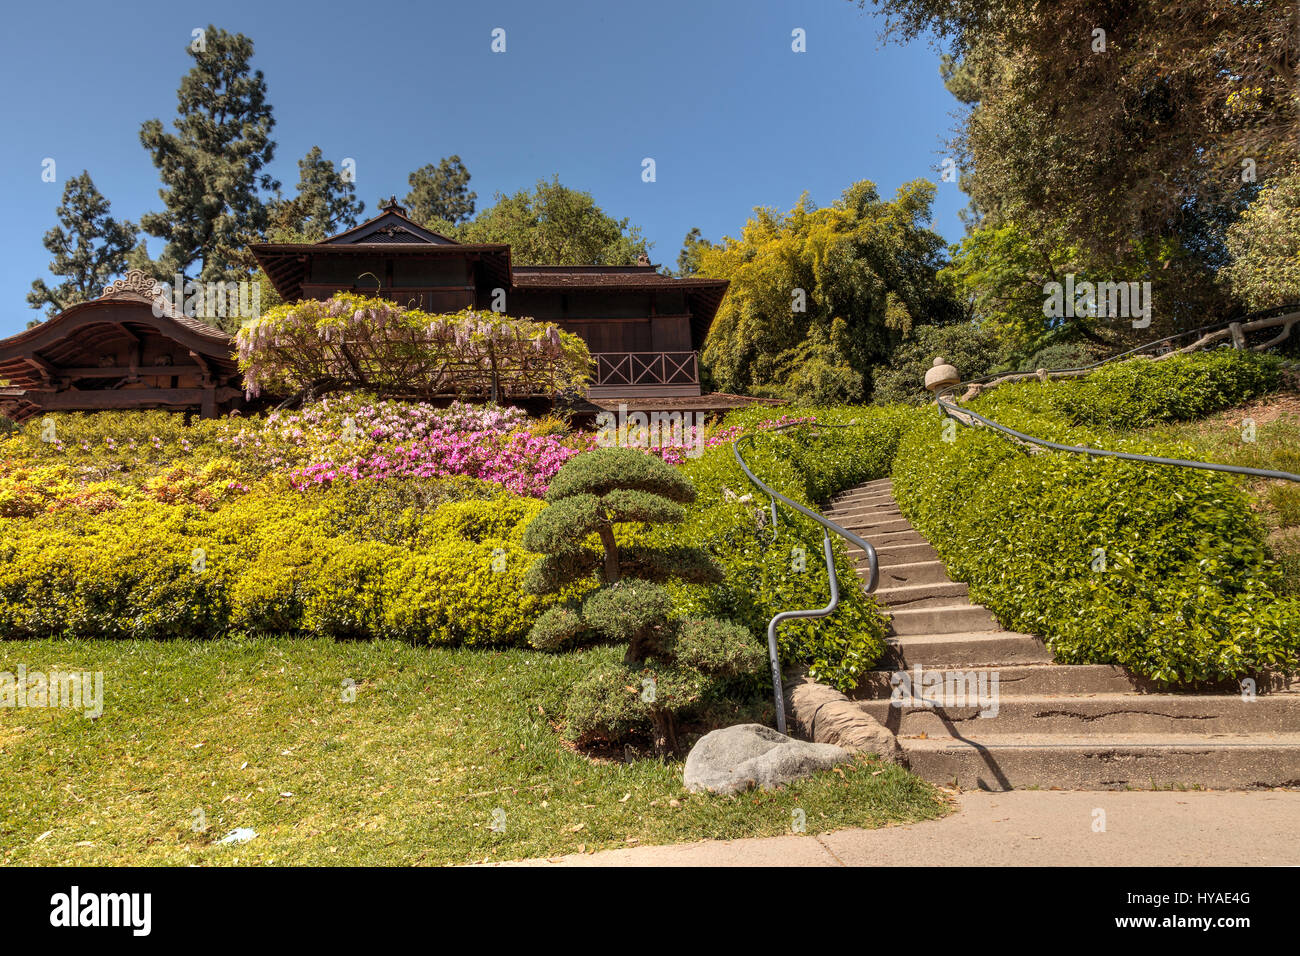 Los Angeles, California, April 1, 2017: Japanese garden at the Stock ...